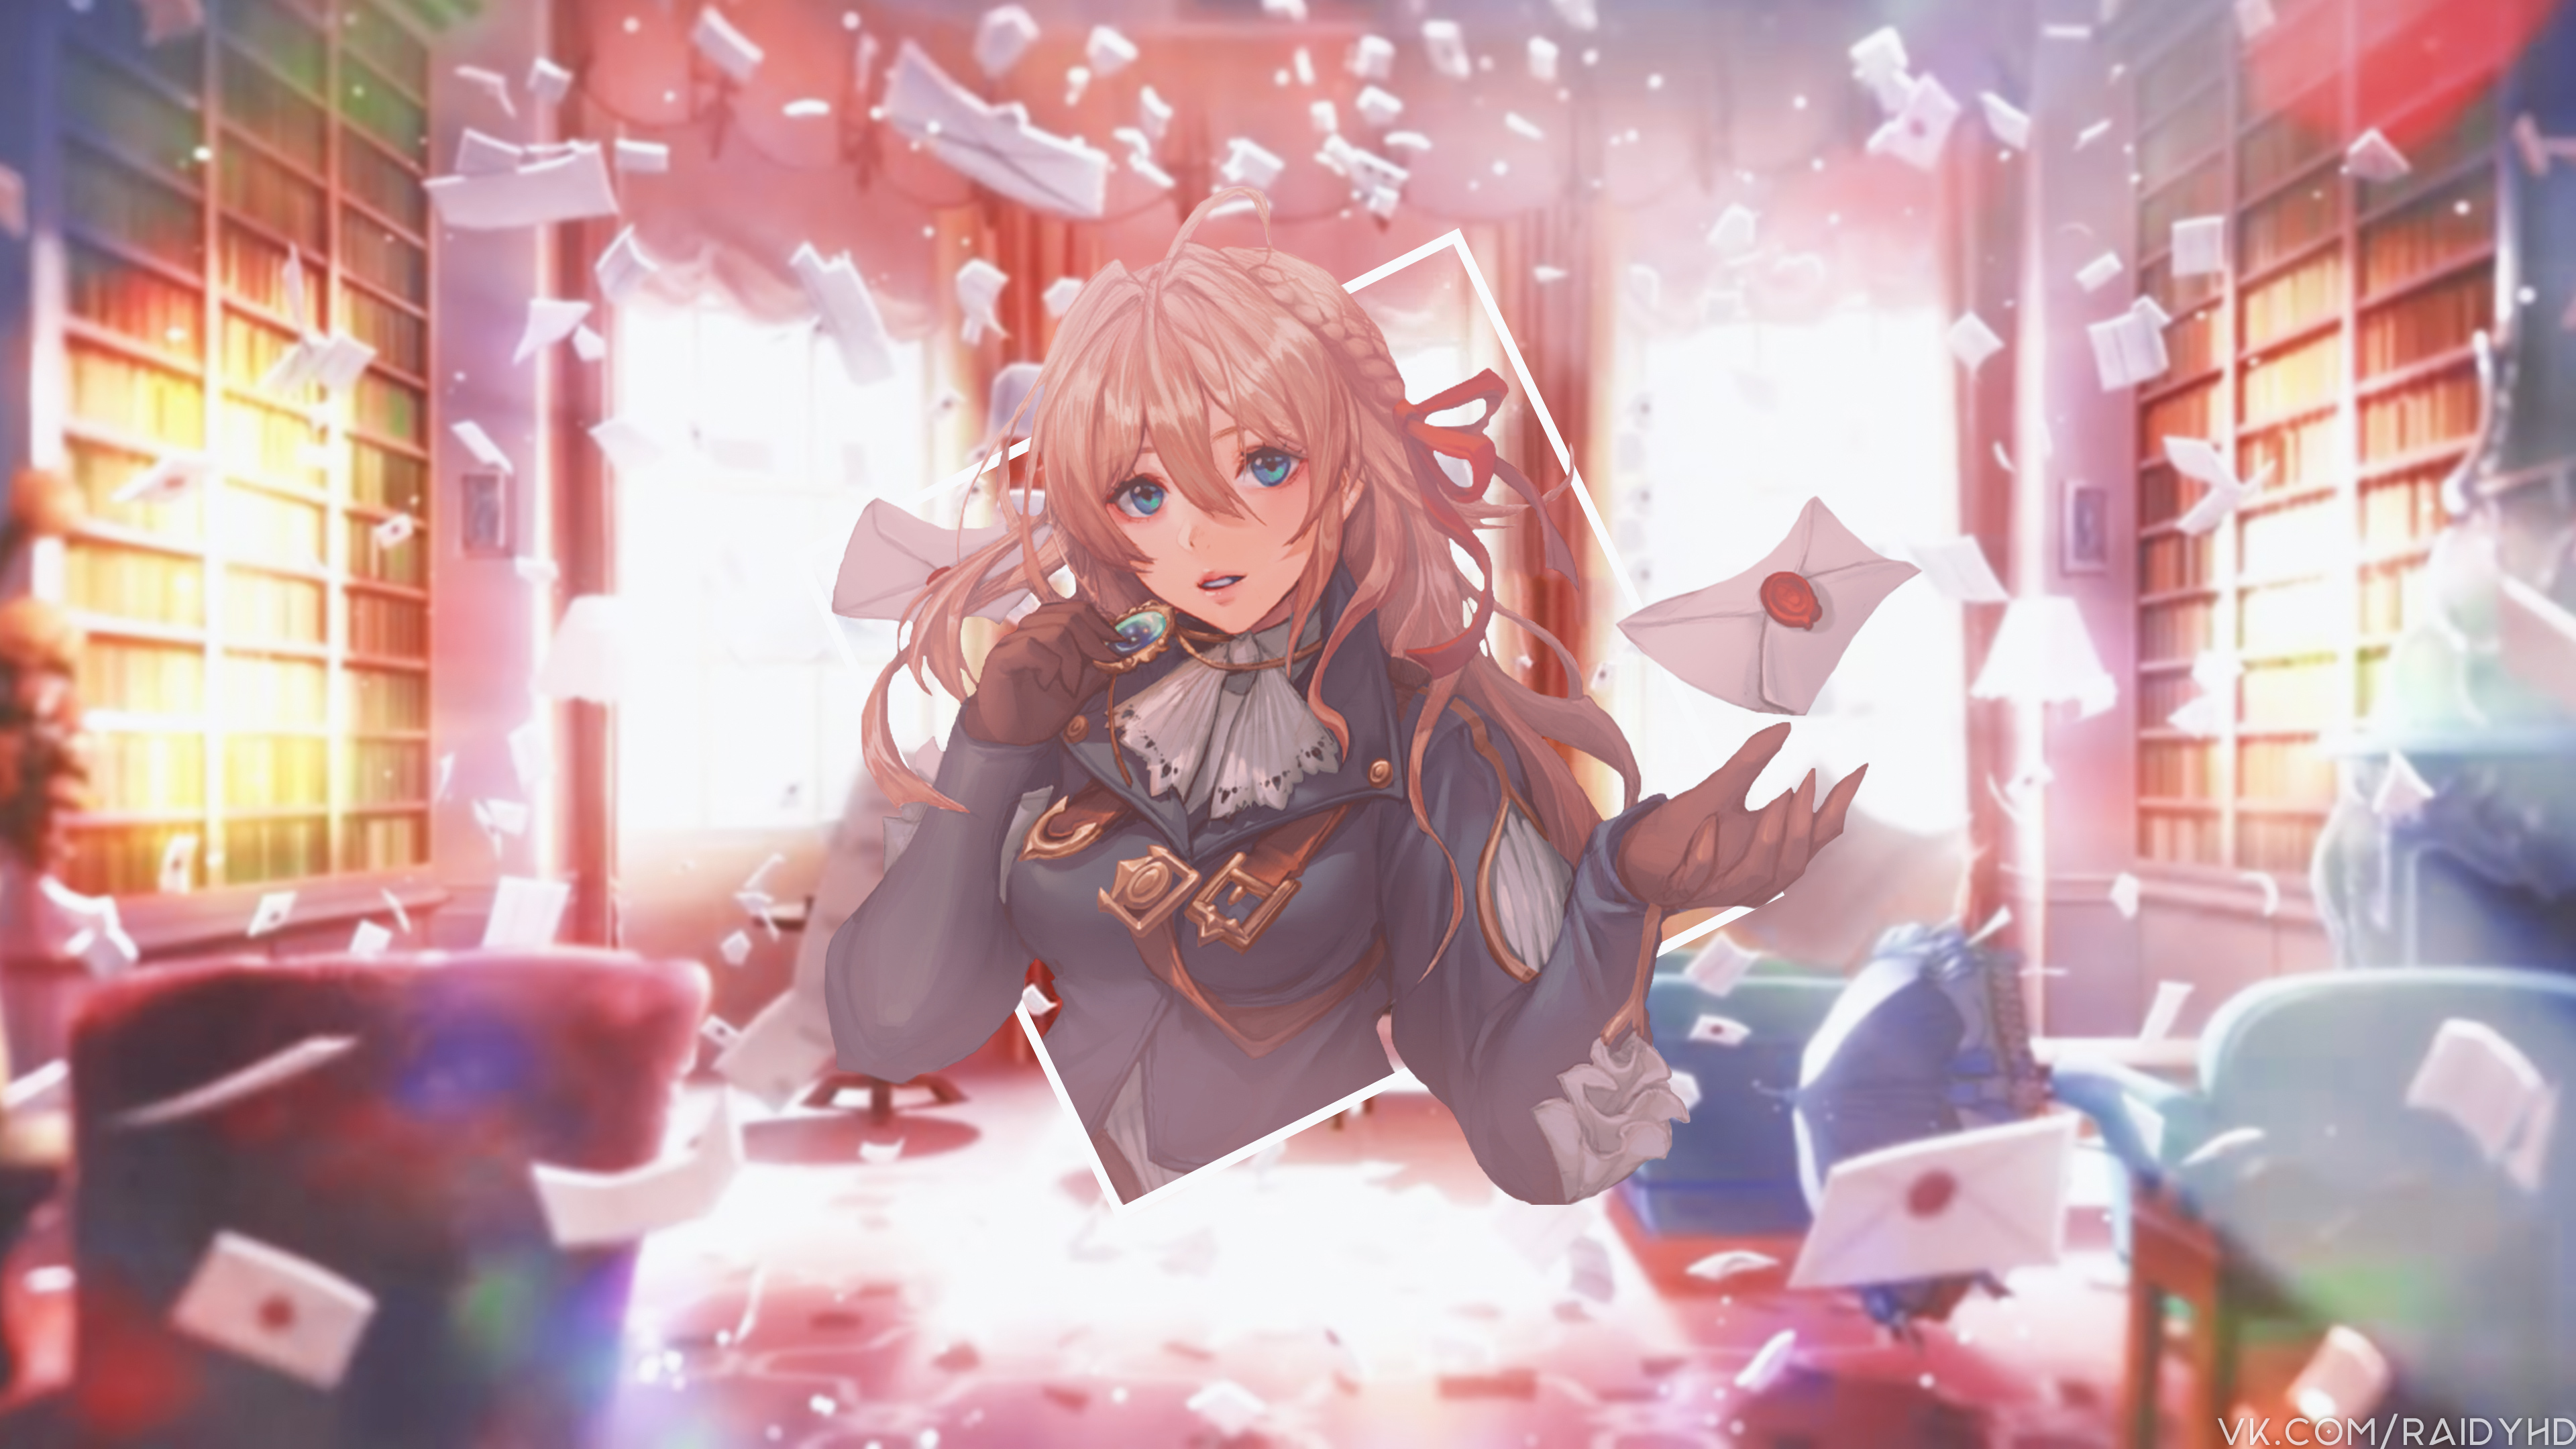 Anime Valentine Hd Anime 4k Wallpapers Images: 1366x768 4k Violet Evergarden Anime 1366x768 Resolution HD